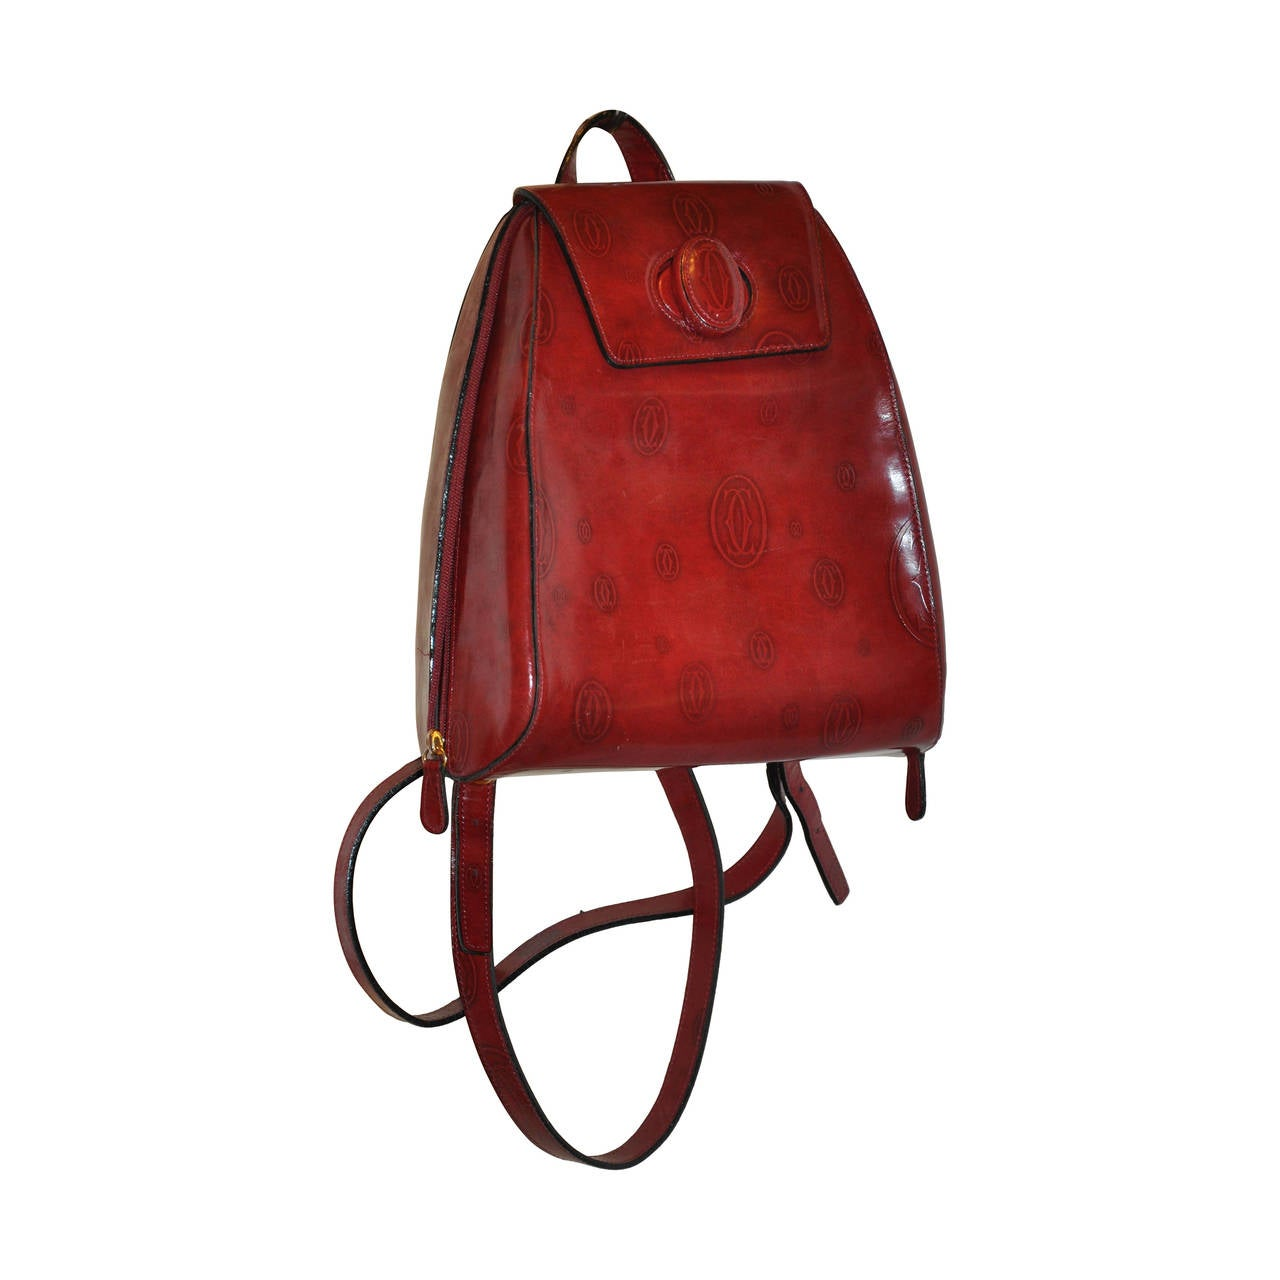 Cartier Signature Burgundy Backpack 1